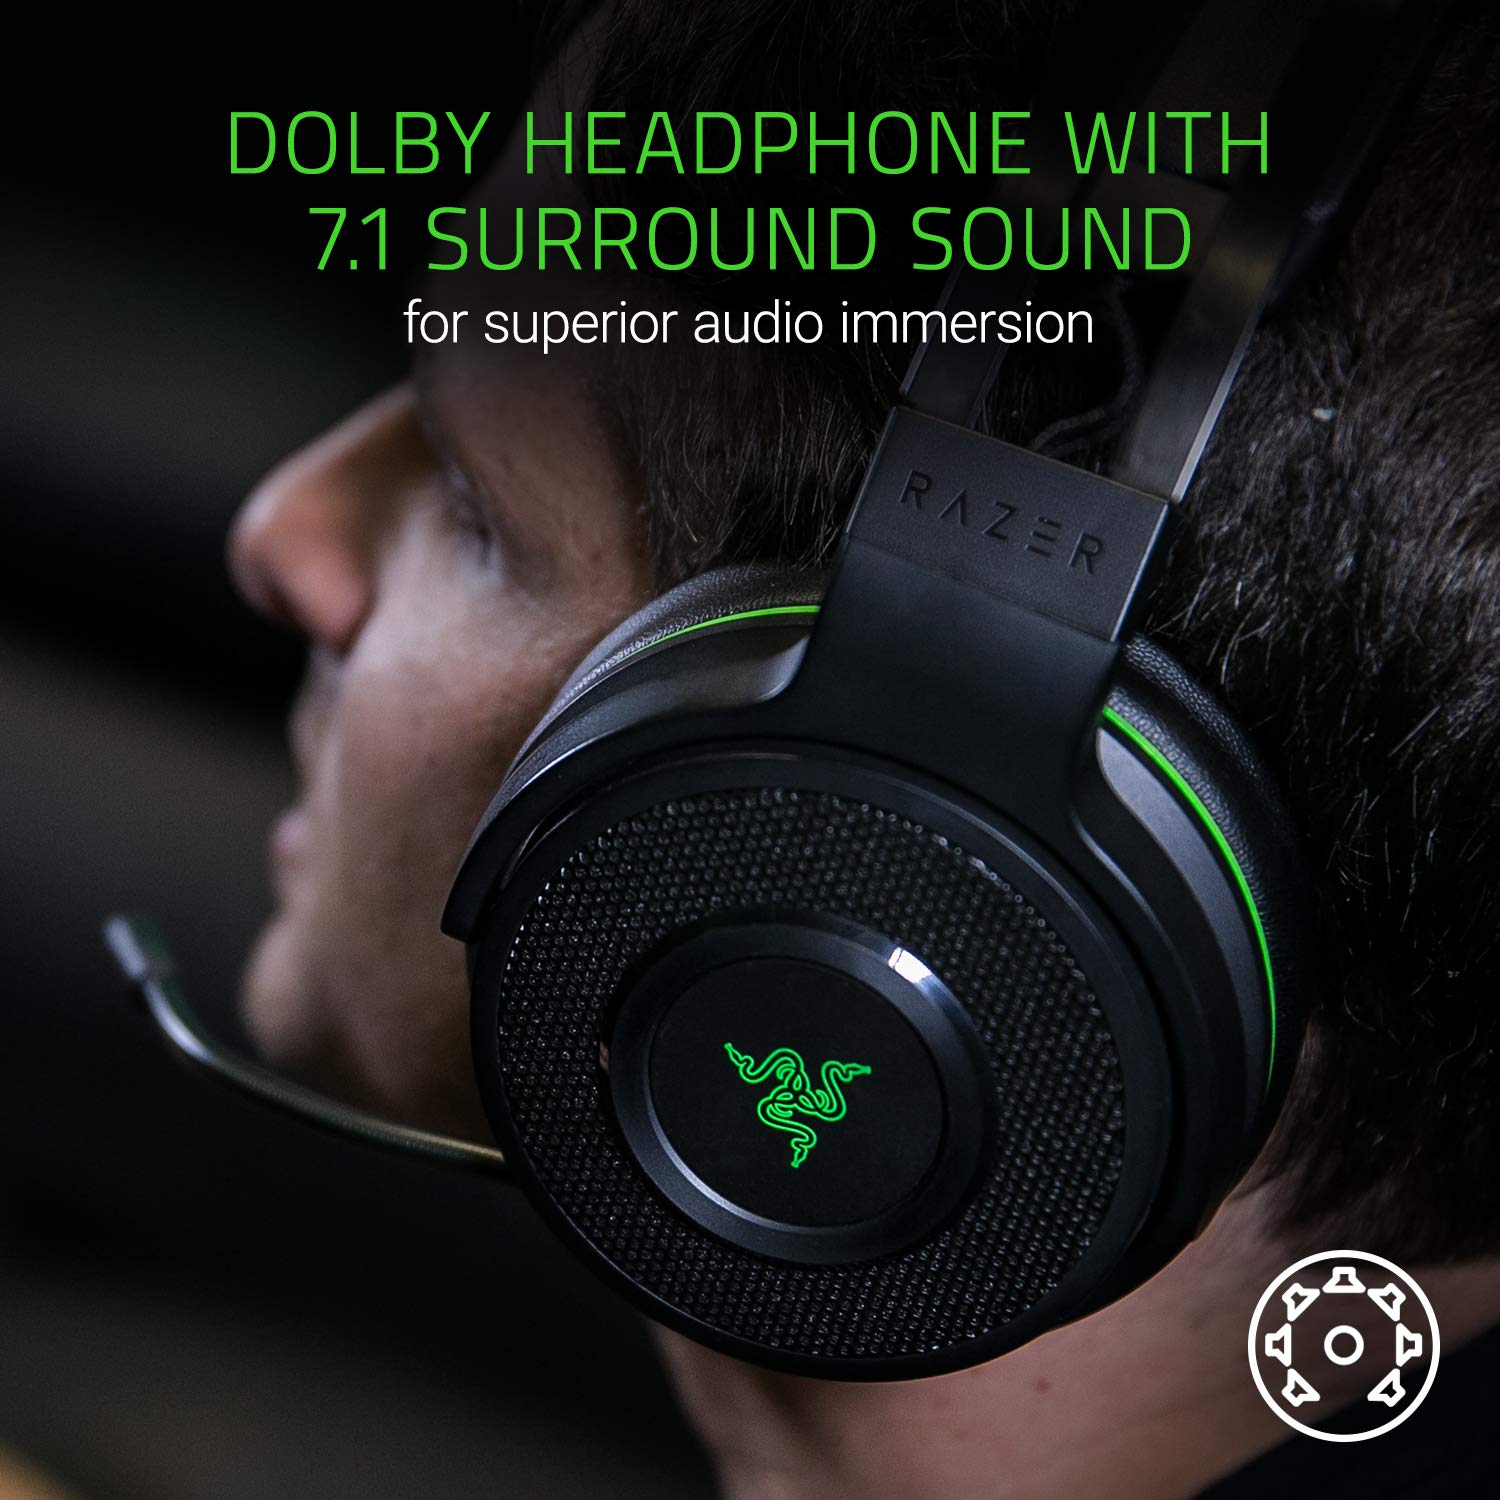 97b49365099 Razer Thresher Ultimate For Xbox One: Dolby 7.1 Surround Sound - Lag-Free  Wireless Connection - Retractable Digital Microphone - Base Station  Wireless ...